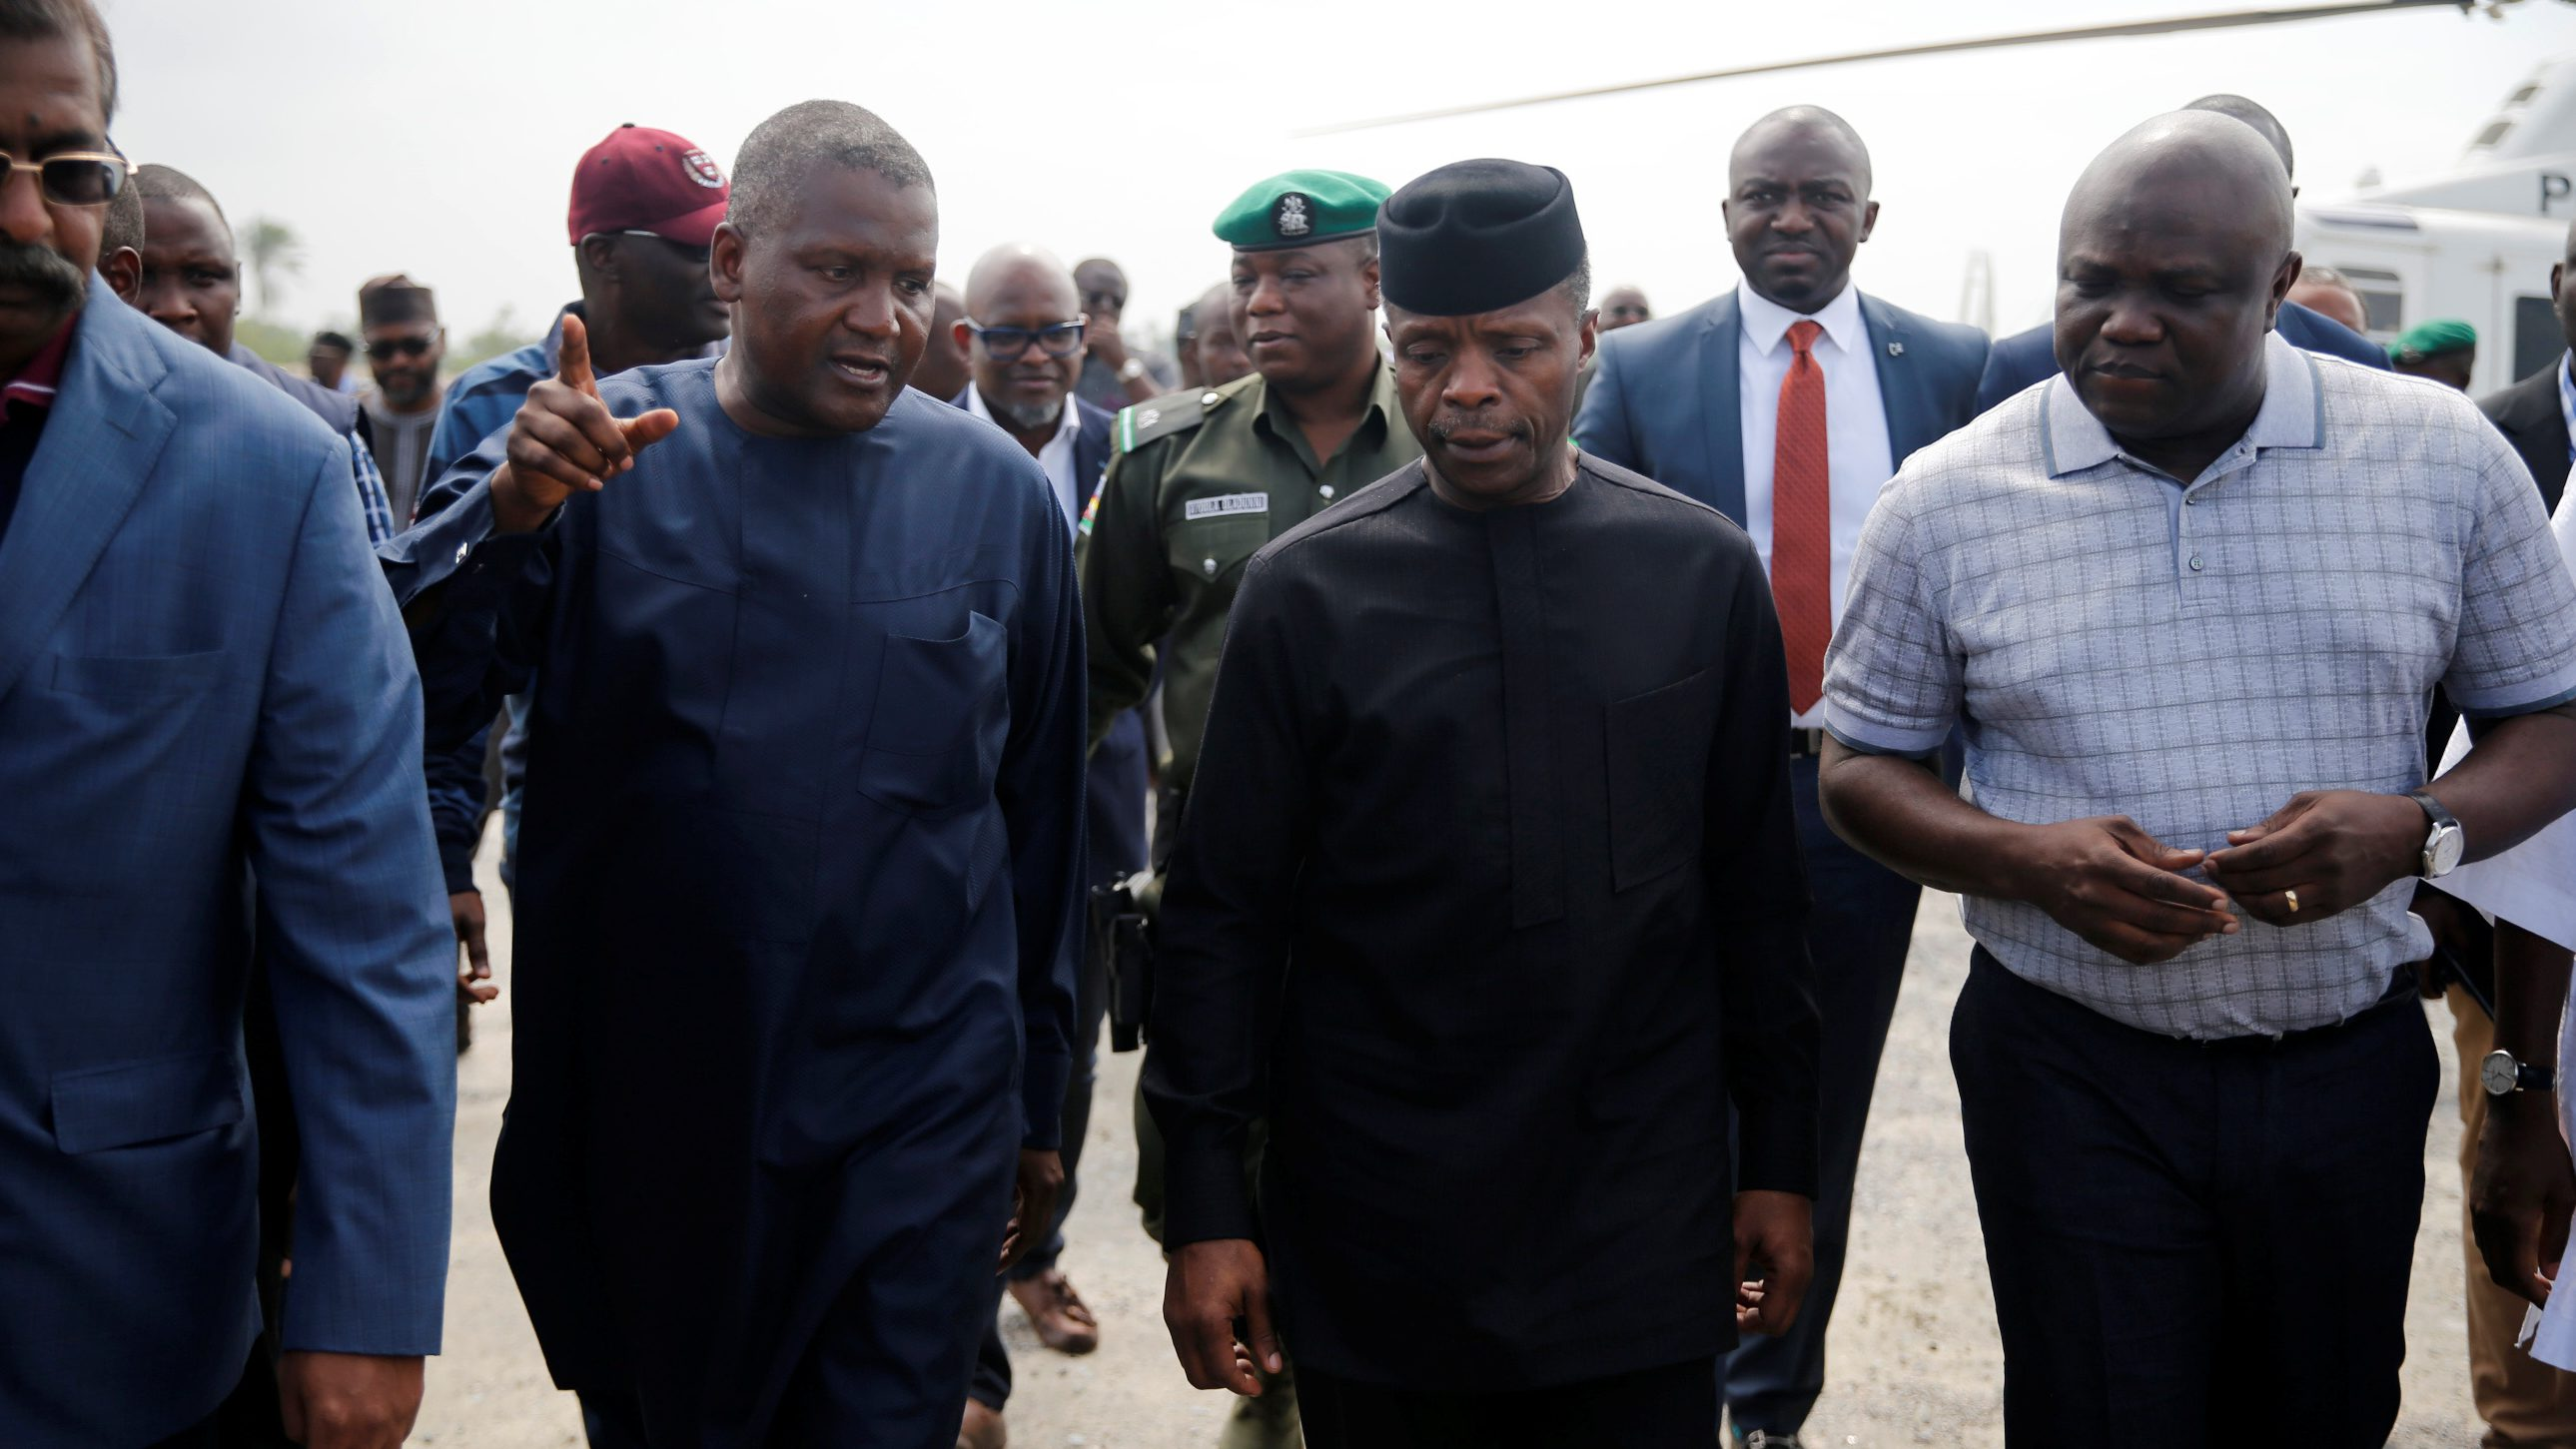 Africa's richest man, Aliko Dangote, Nigeria's Vice-President Yemi Osinbajo and Lagos' Governor Akinwunmi Ambode walk as they arrive for a facility tour at the proposed Dangote oil refinery site near Akodo beach in Lagos